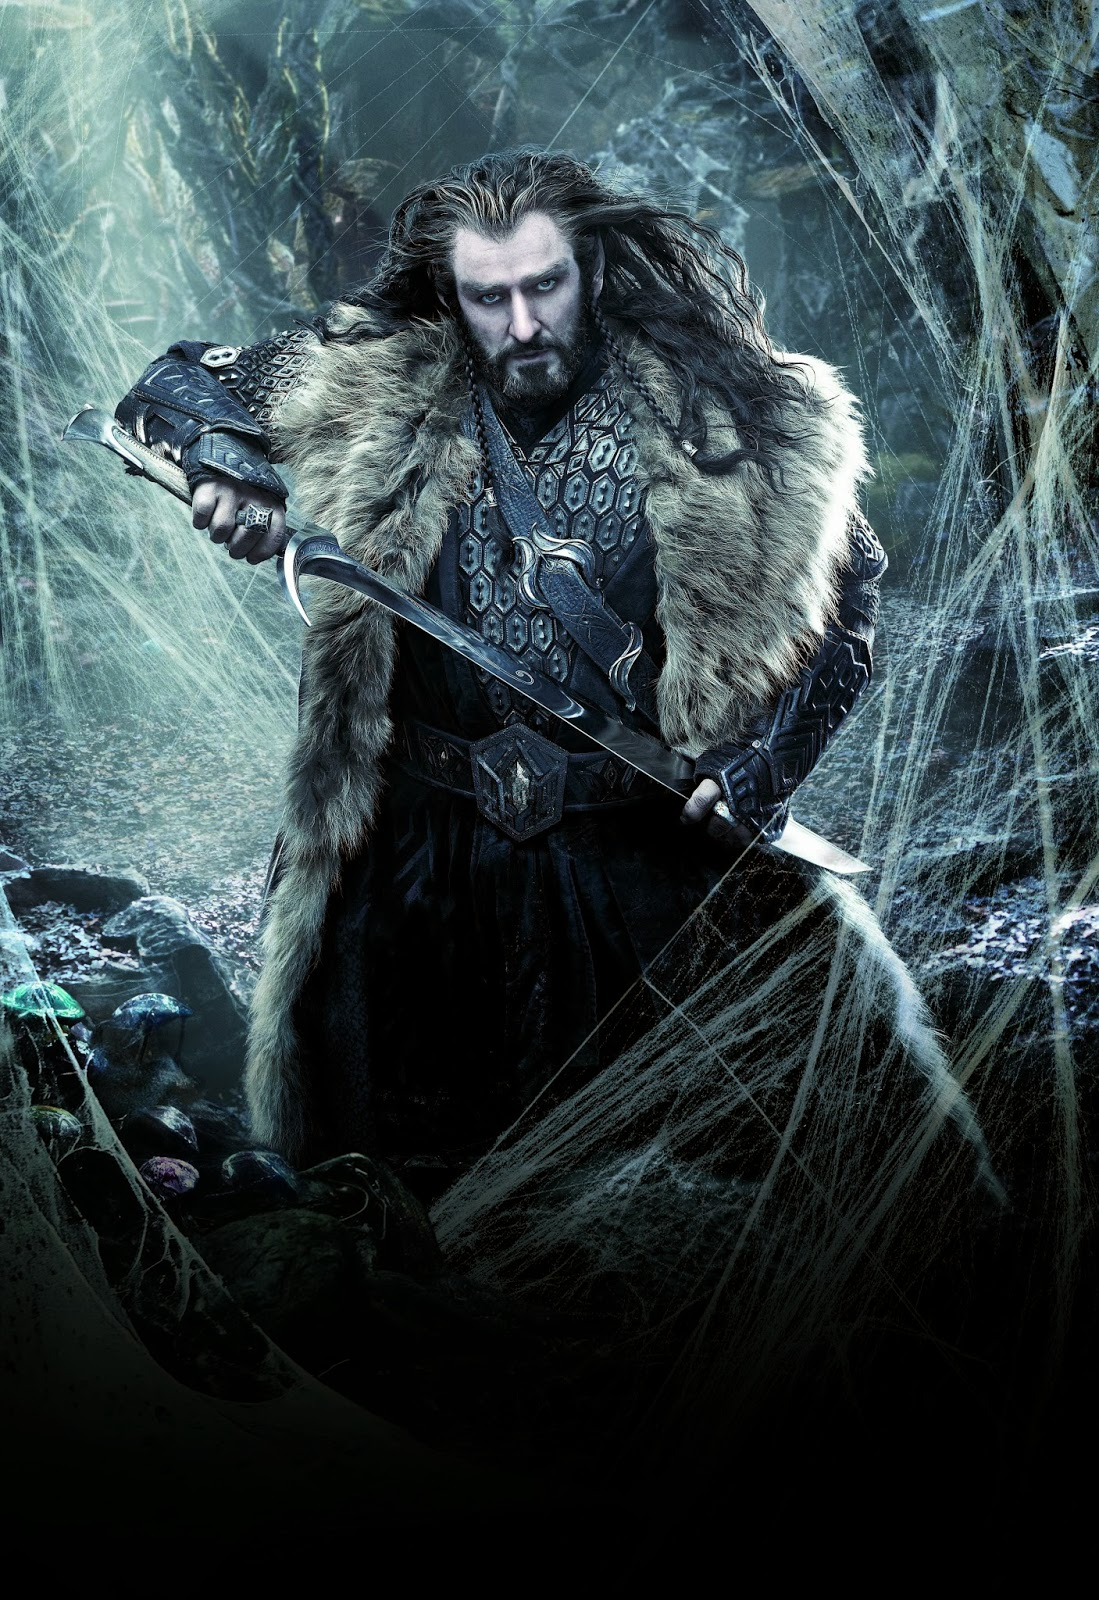 Thorin II Oakenshield | The One Wiki to Rule Them All | FANDOM